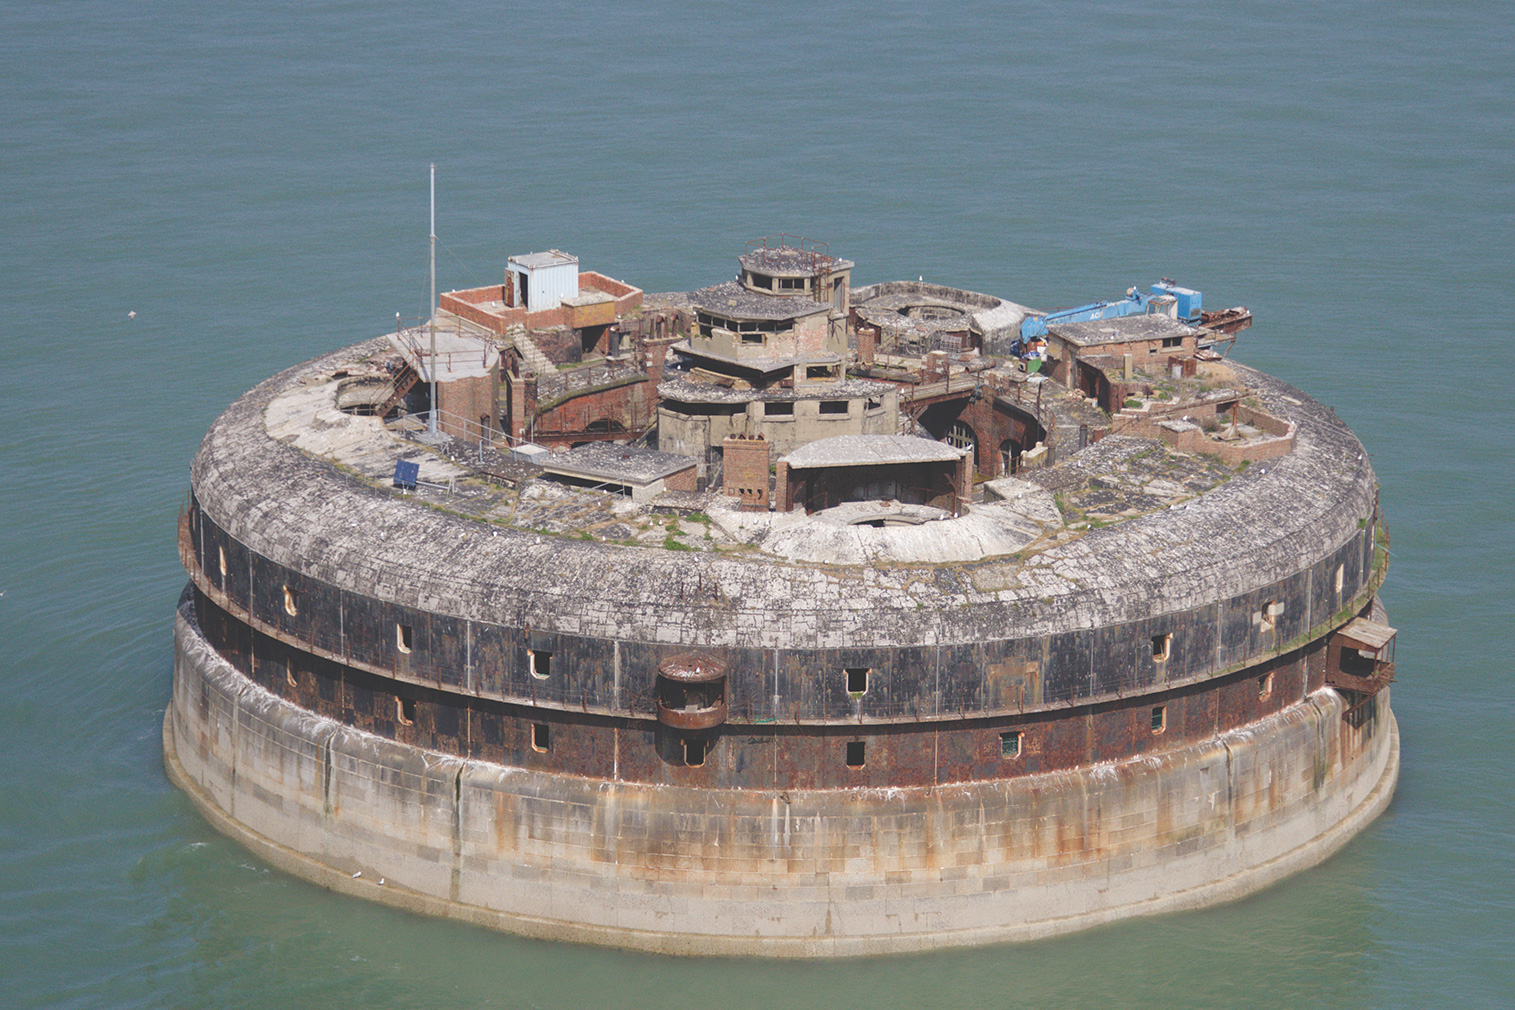 Horsesands Fort dates from the Napoleonic wars and is in need of complete renovation